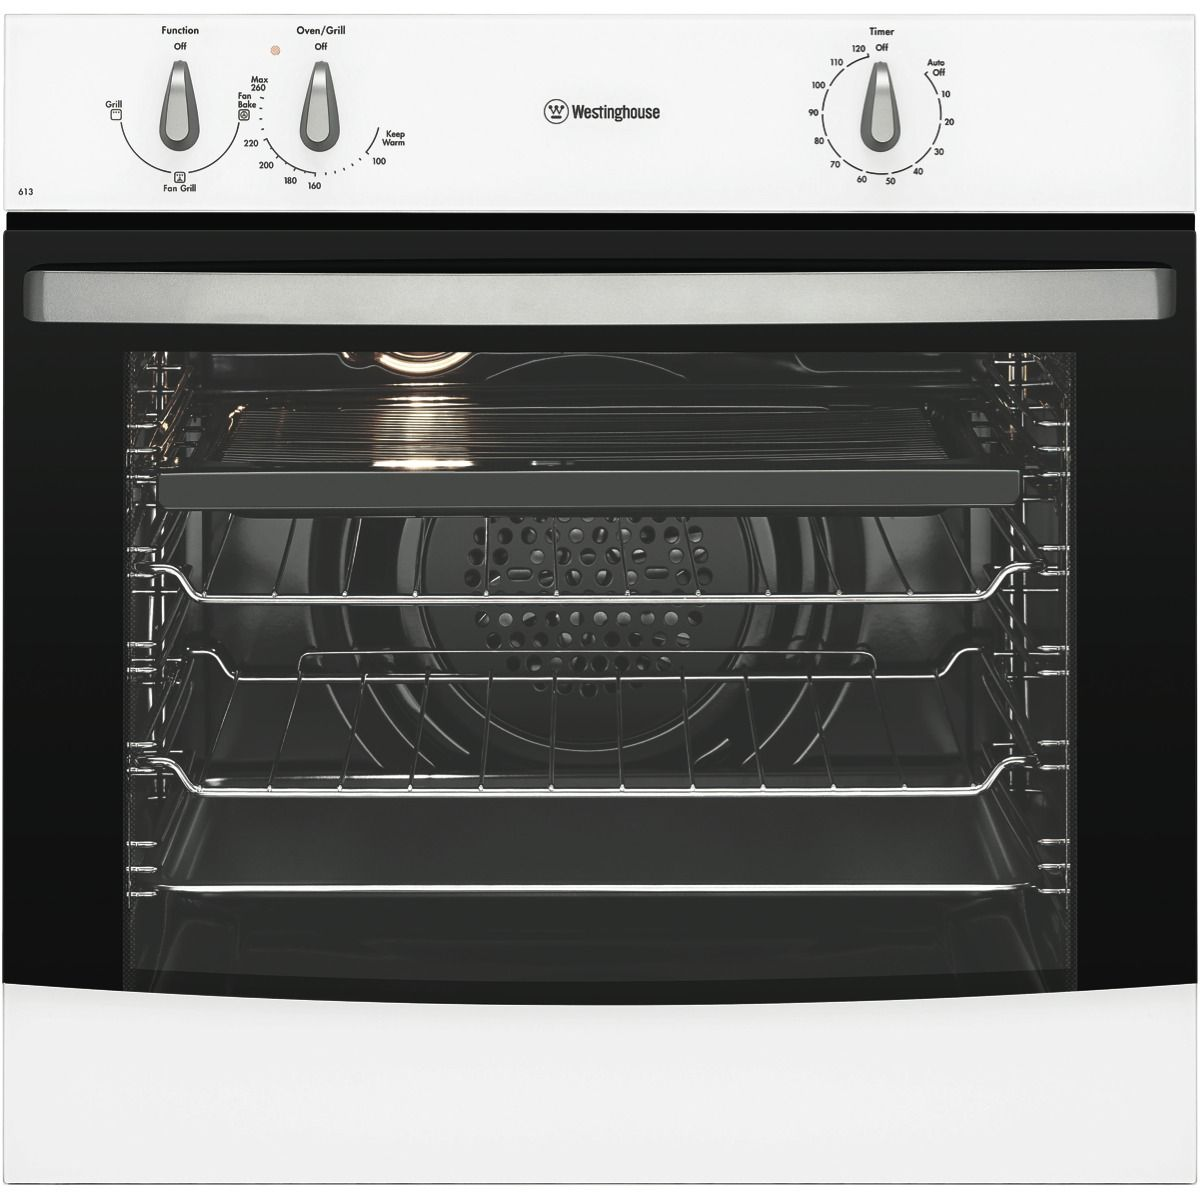 Uncategorized The Good Guys Kitchen Appliances westinghouse wve613w 60cm electric oven and more at the good guys